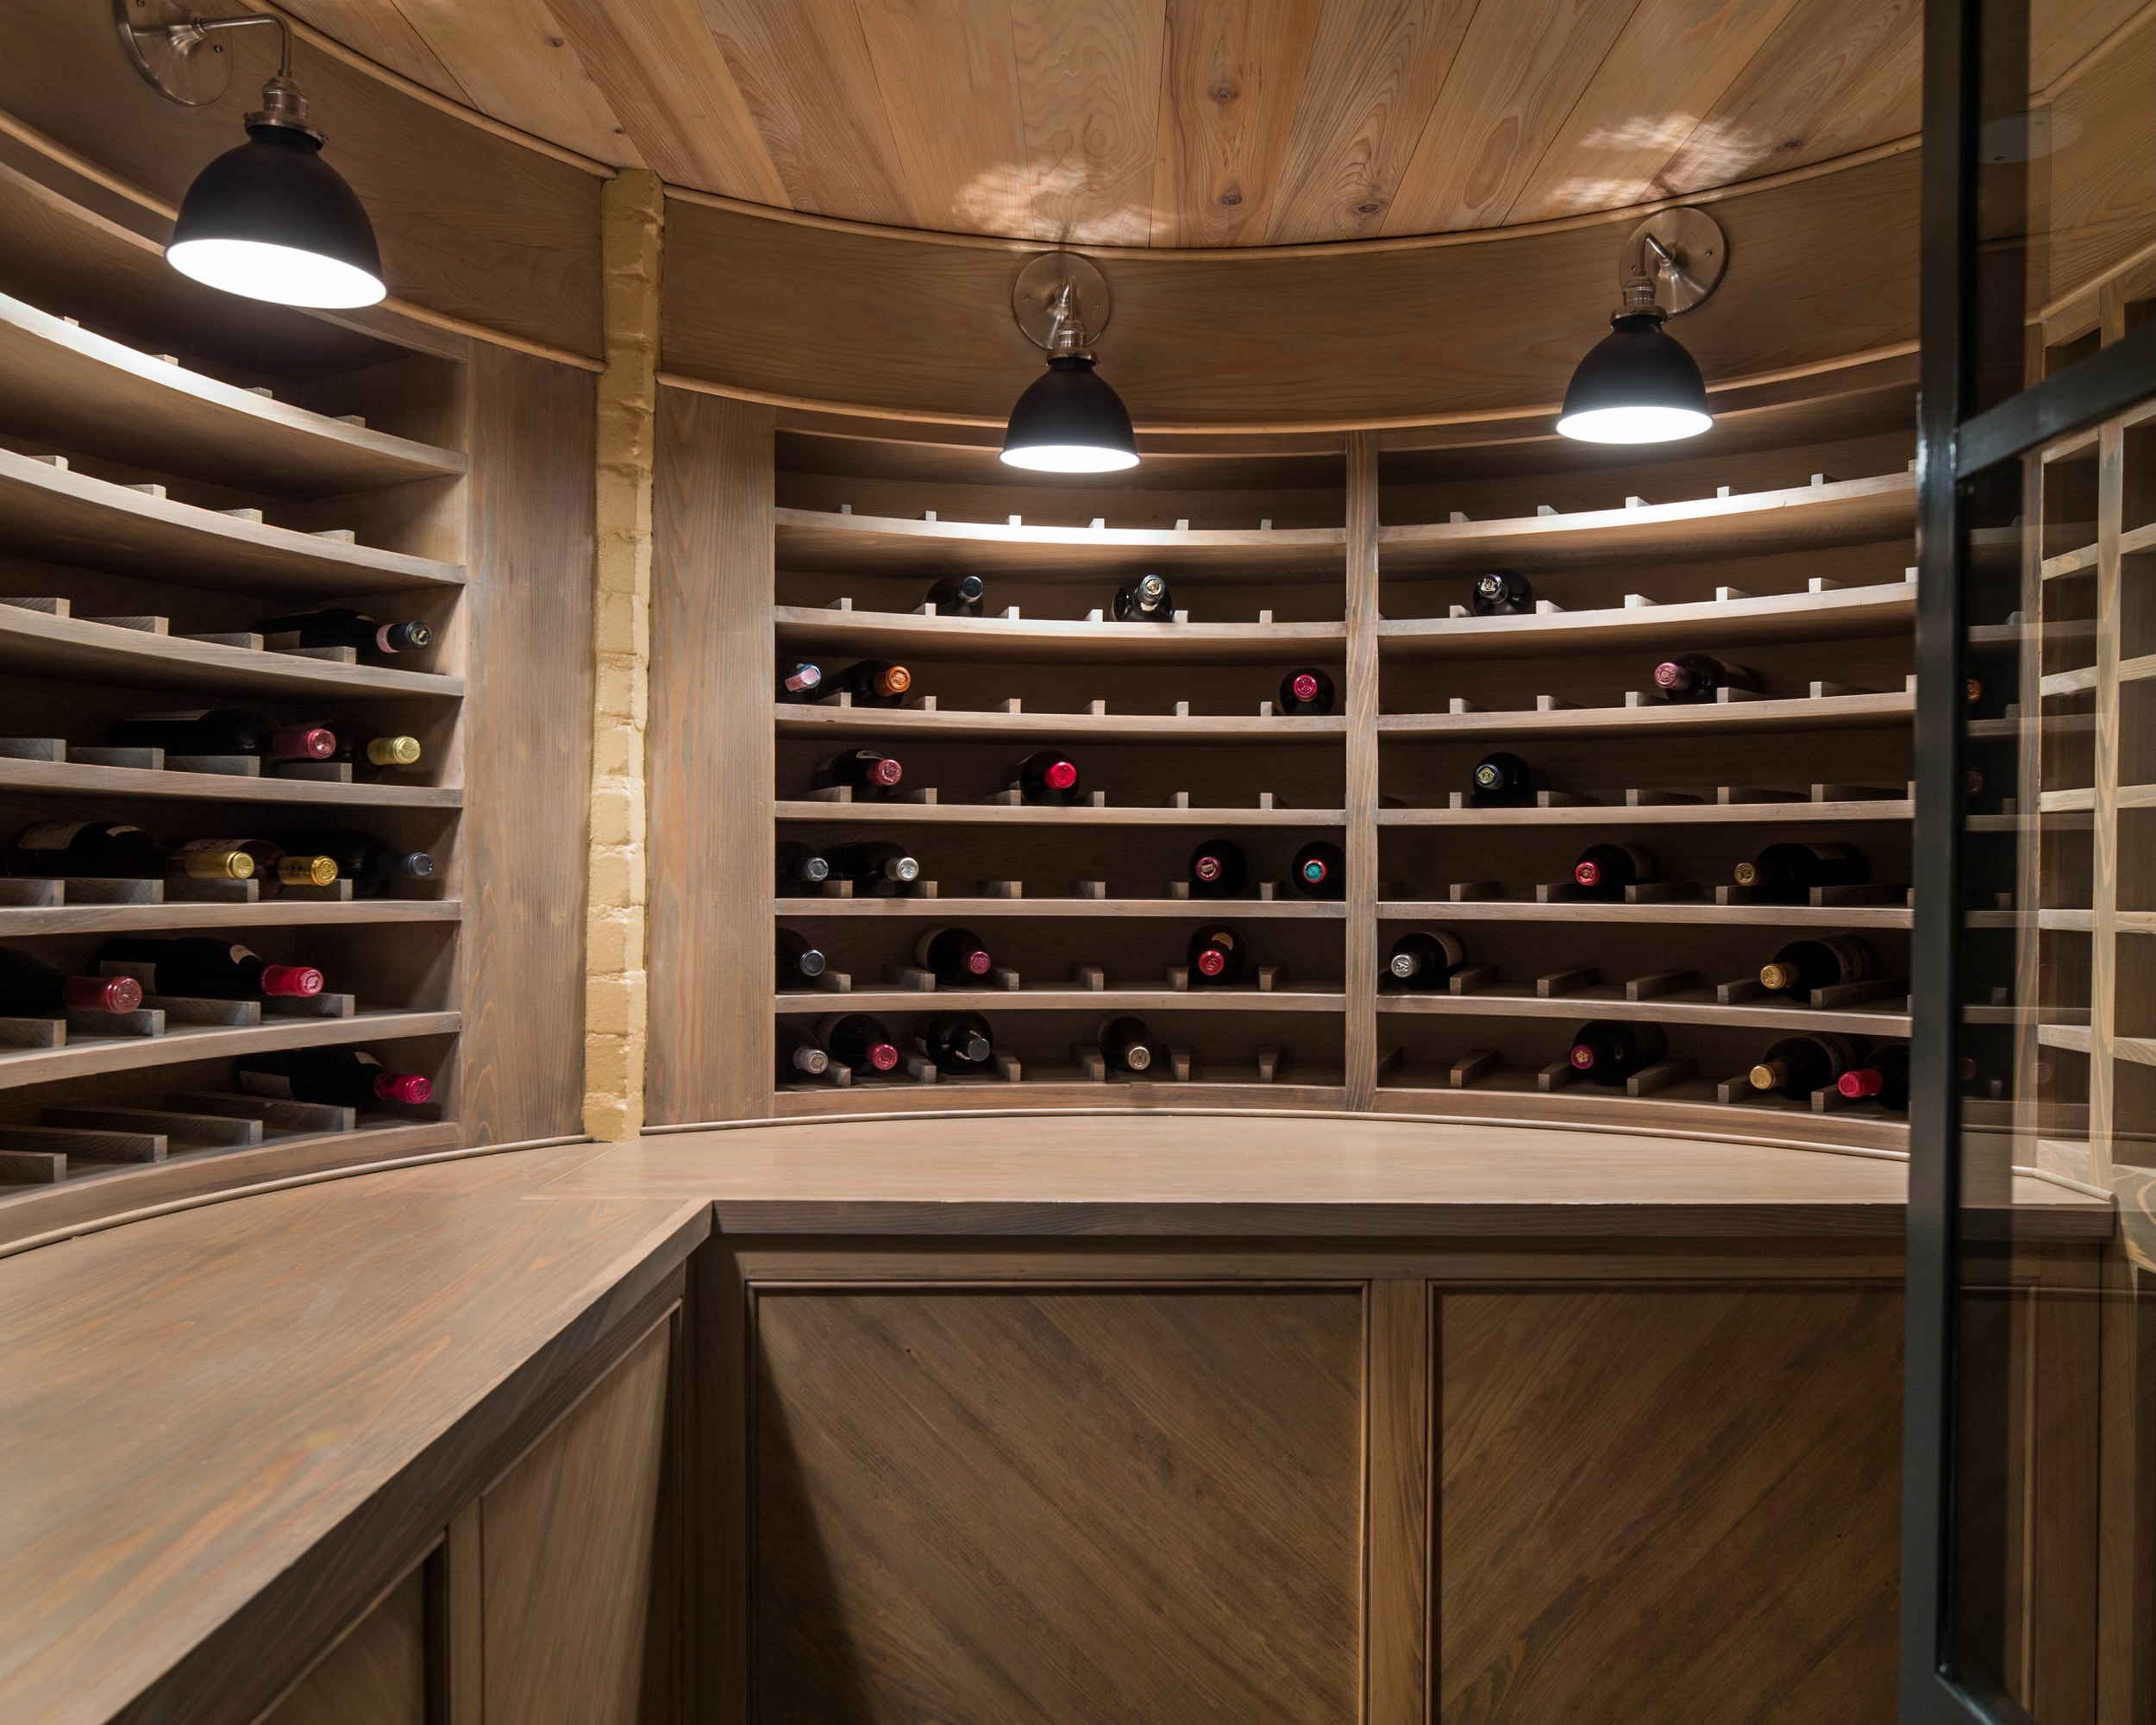 Wine cellar fabricated by Deal Cabinets in an expansive basement remodel designed by Sissy Austin, AIA.